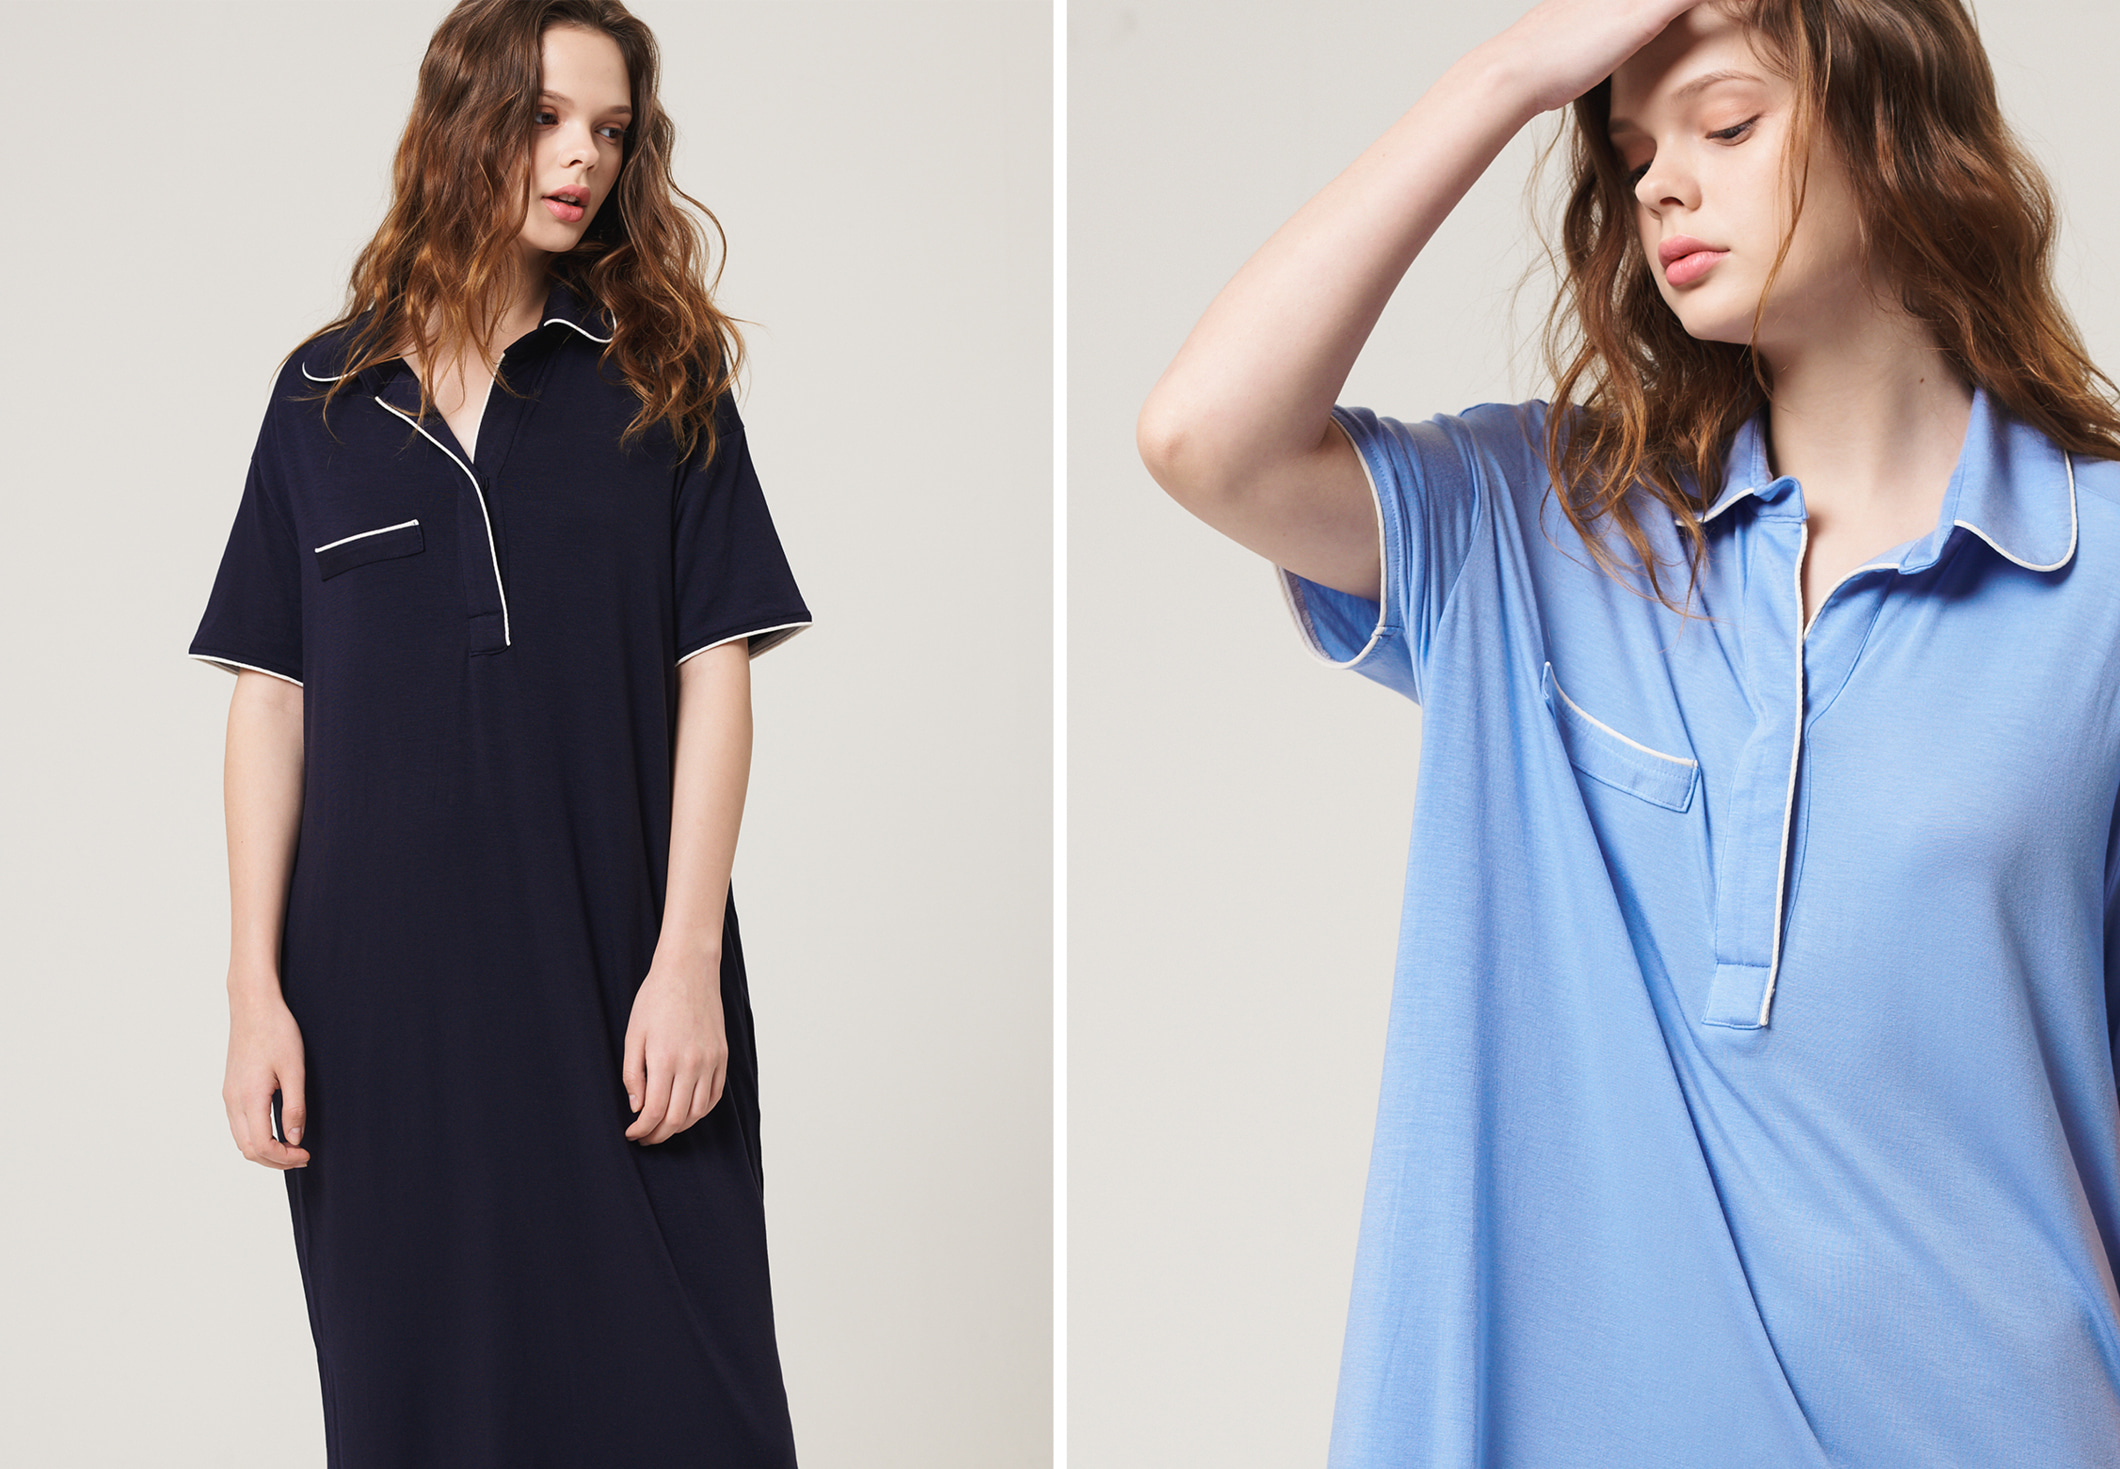 SoftLife Night Dress [S/S]